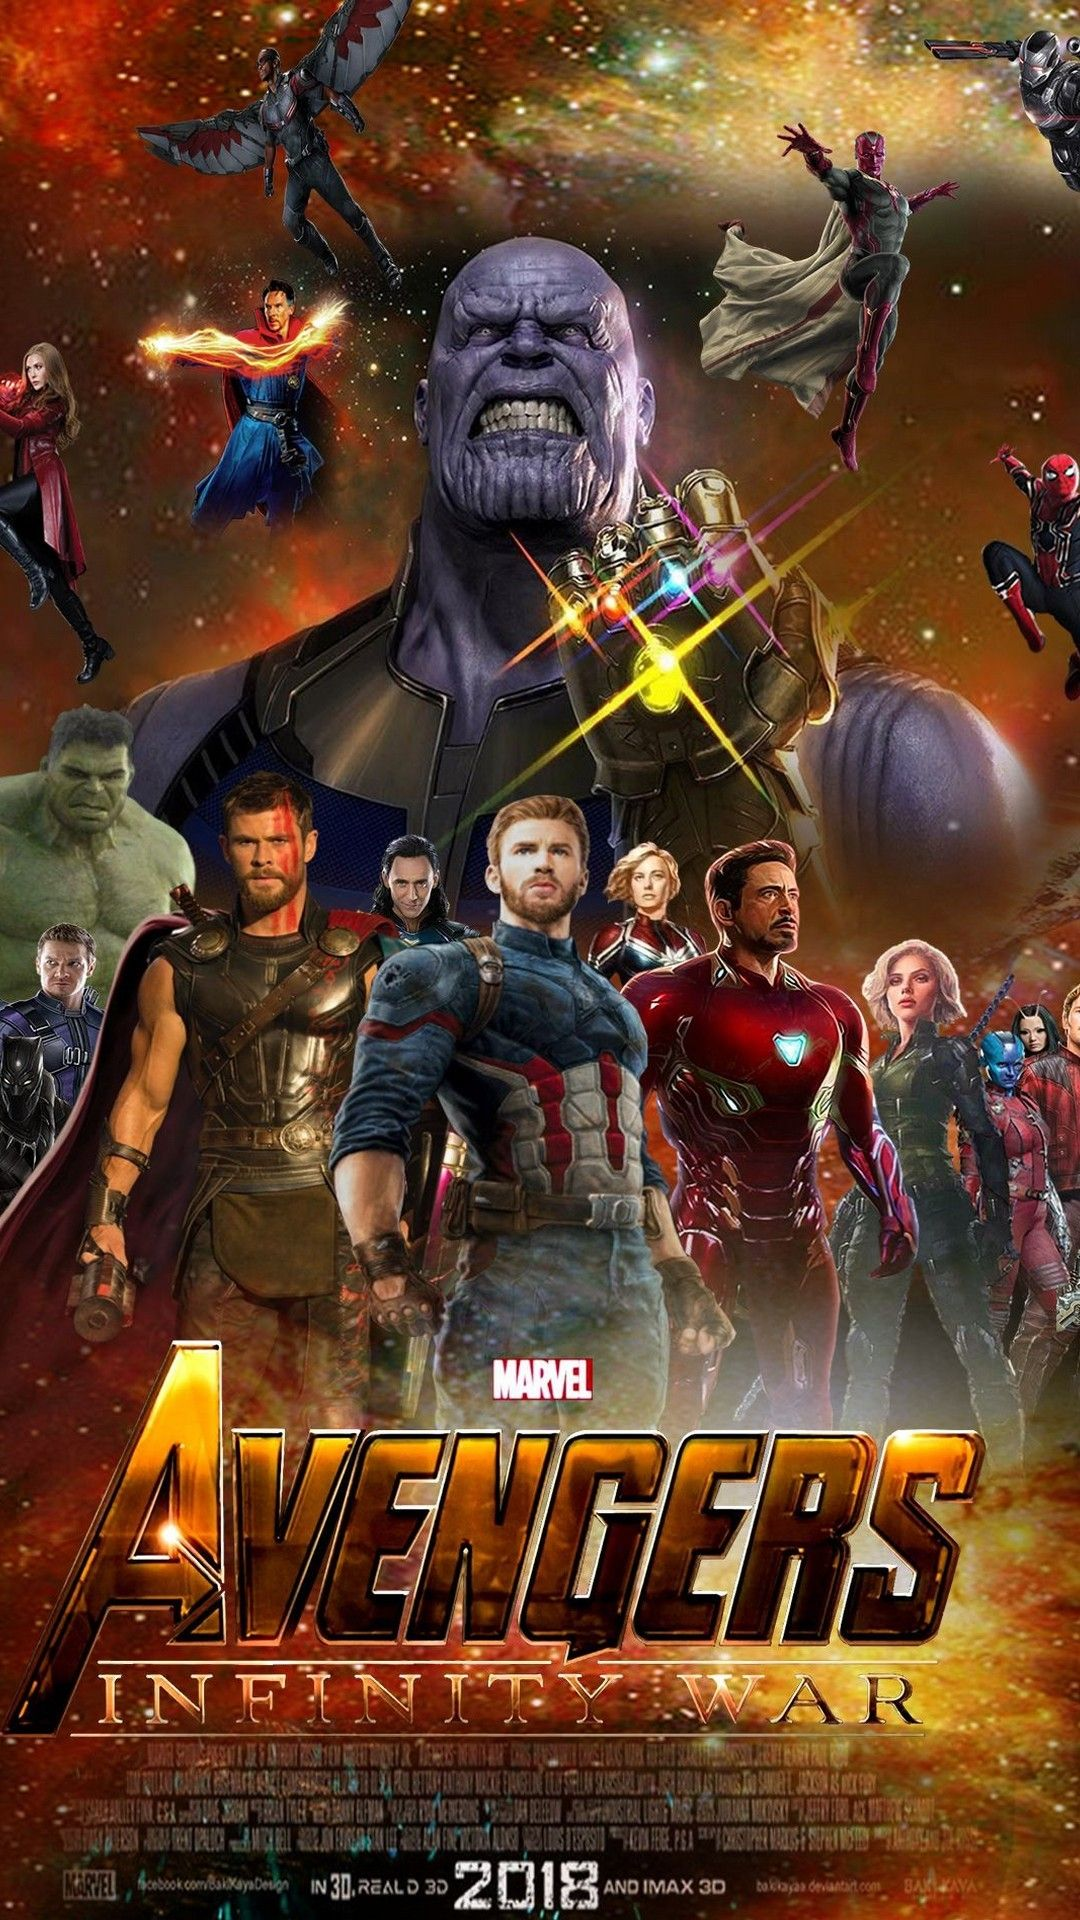 Iphone 7 Wallpaper Avengers Infinity War Iphonewallpapers Movies